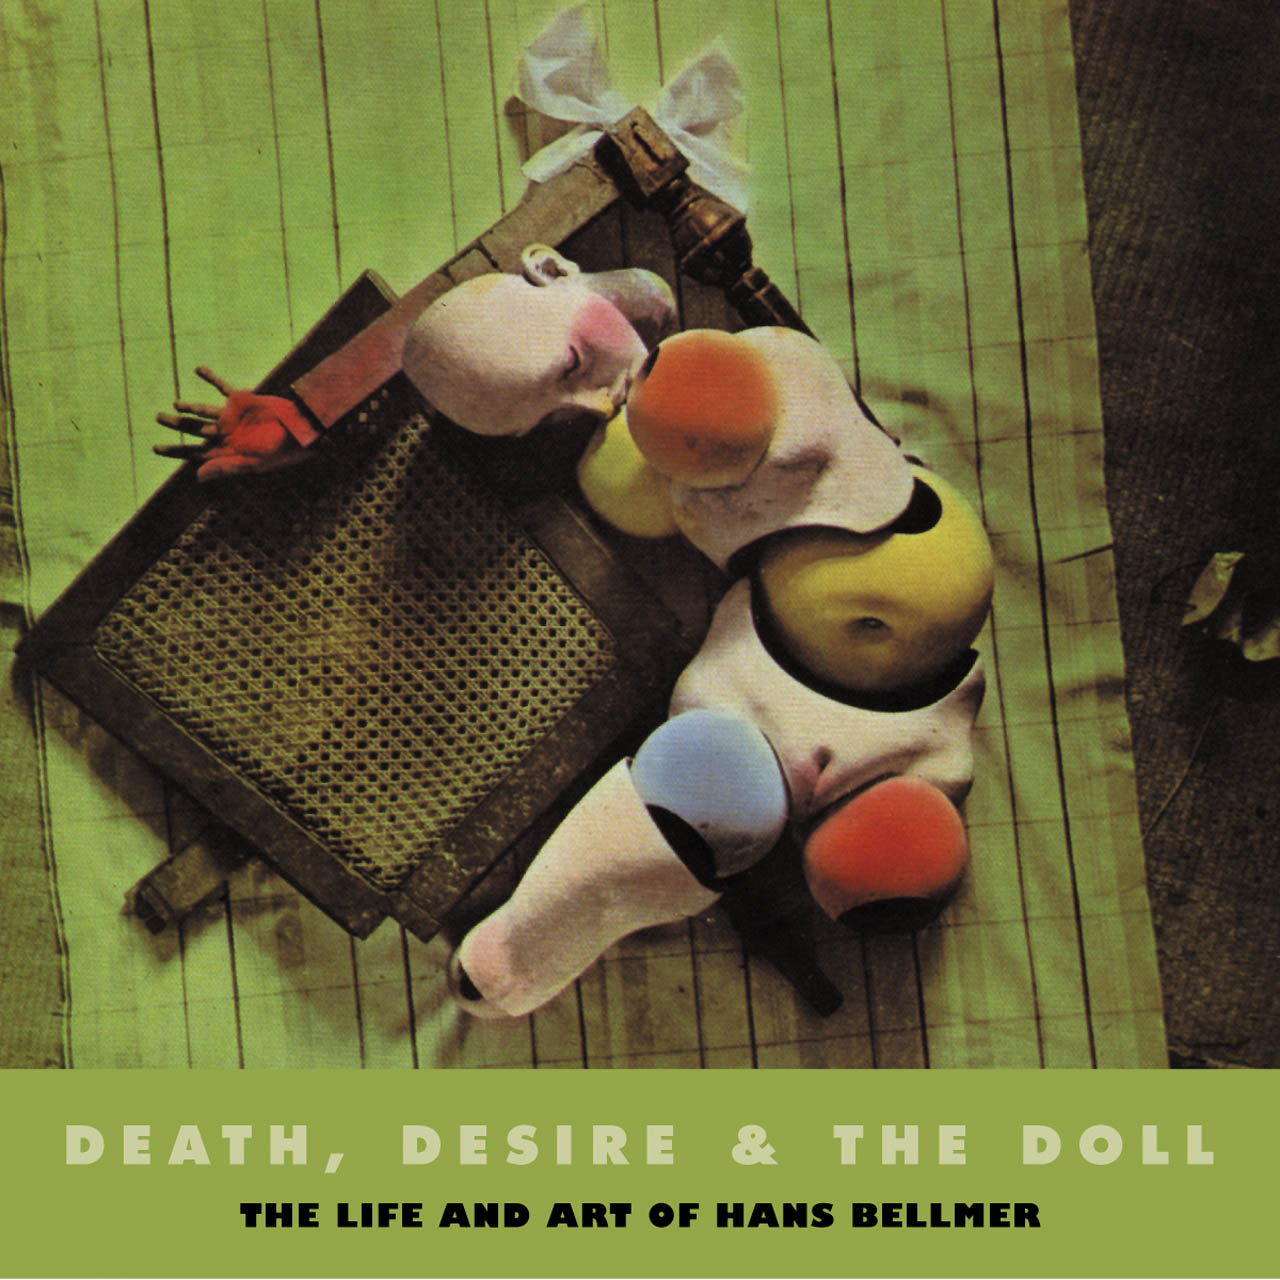 Death, Desire, and the Doll: The Life and Art of Hans Bellmer